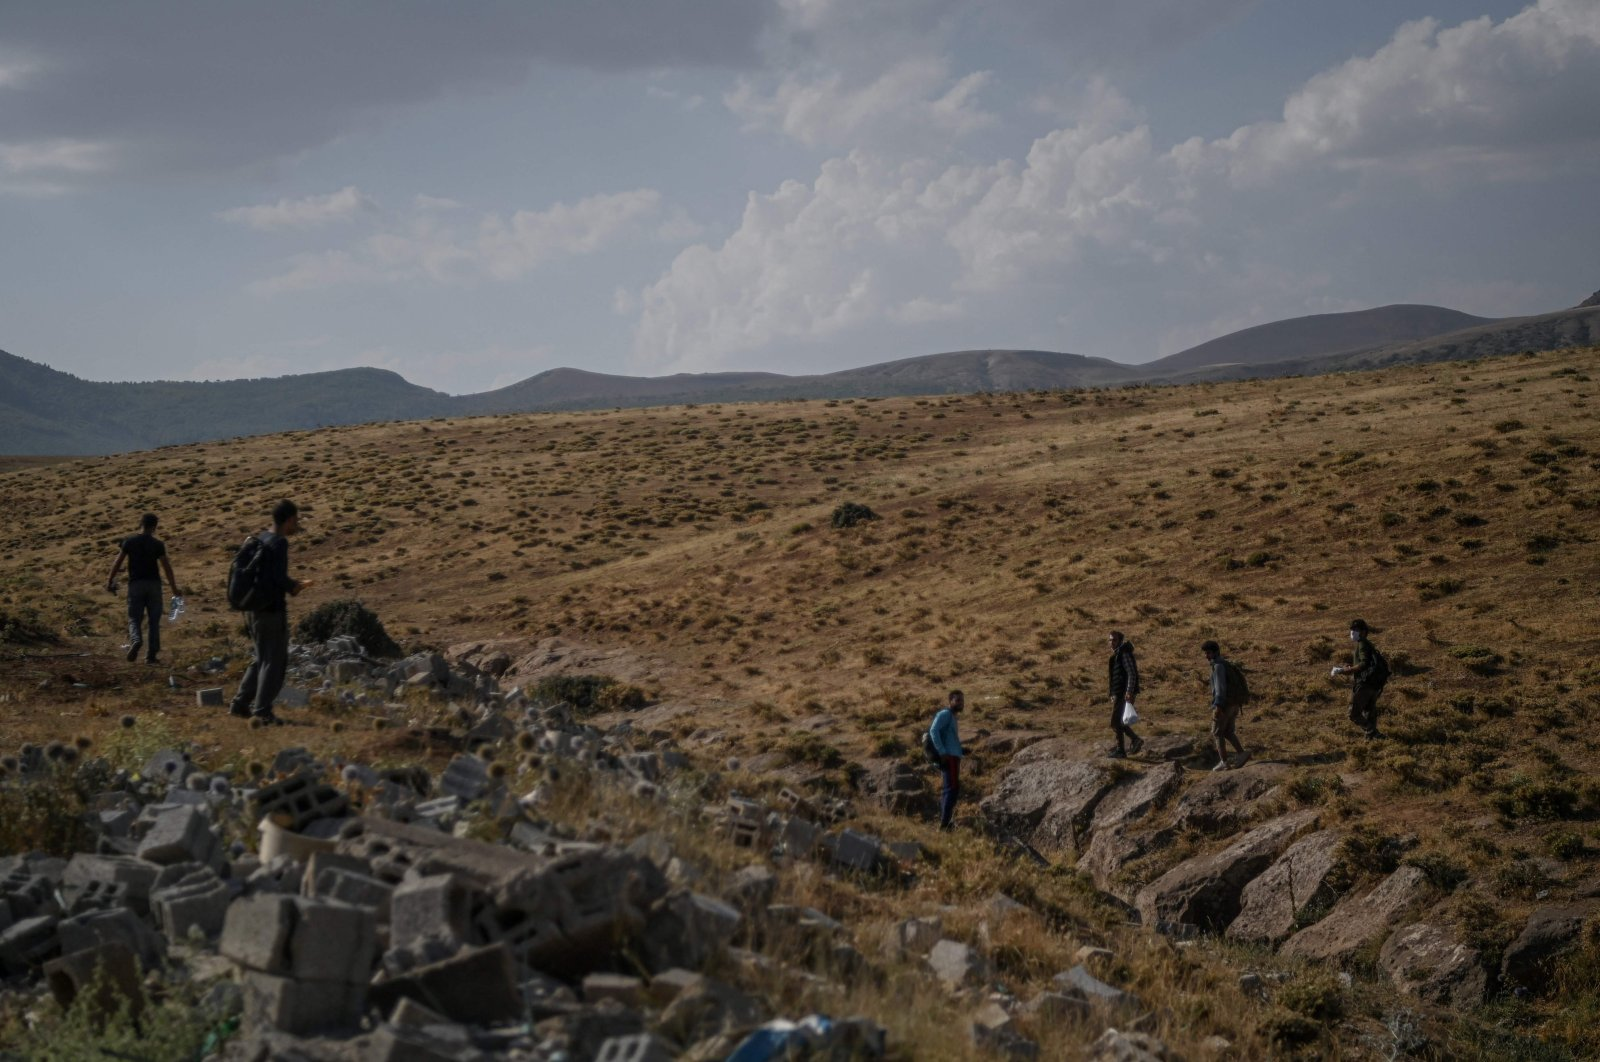 Afghan migrants walk while waiting for transport by smugglers after crossing the Iran-Turkish border in Tatvan on the western shores of Lake Van, eastern Turkey, Aug. 15, 2021 (AFP Photo)